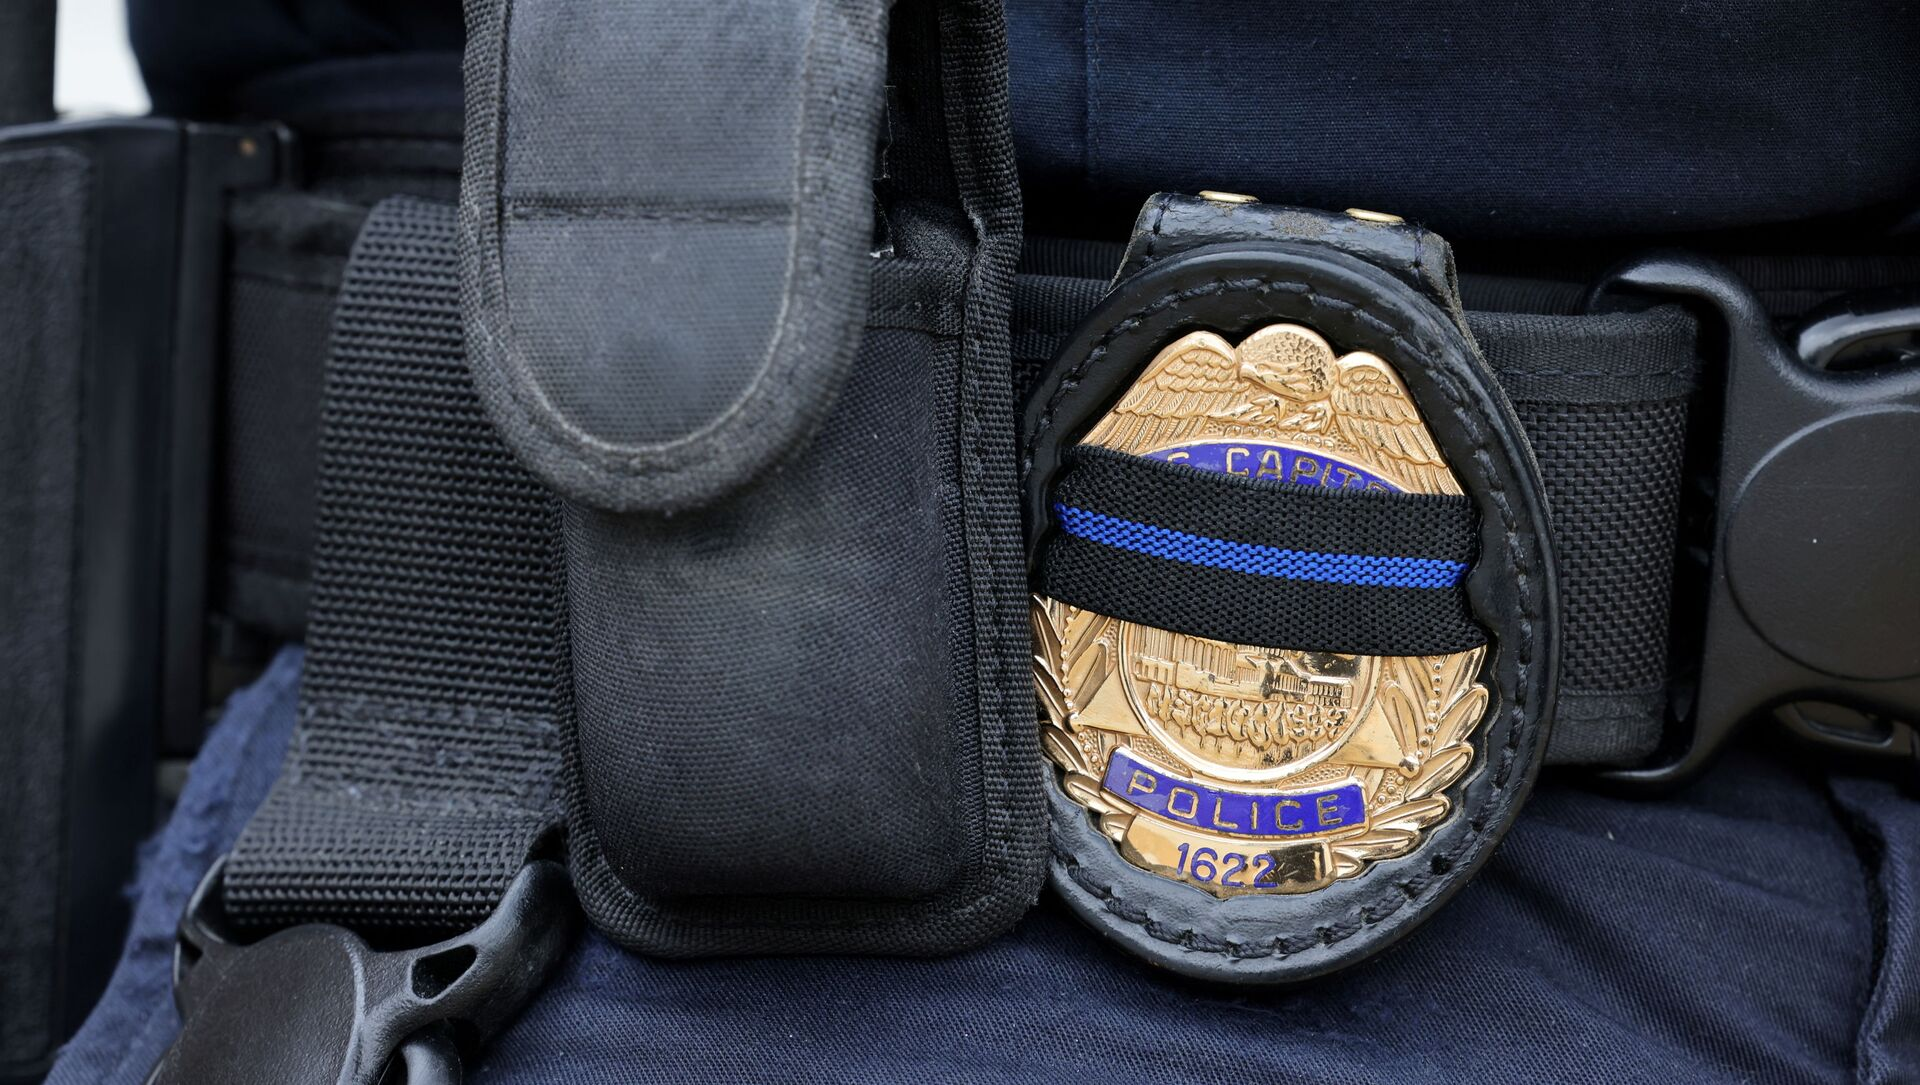 A U.S. Capitol police officer's badge shows a black stripe in honor of deceased colleagues as he guards the building on Capitol Hill in Washington, May 28, 2021. REUTERS/Evelyn Hockstein/File Photo - Sputnik International, 1920, 02.08.2021